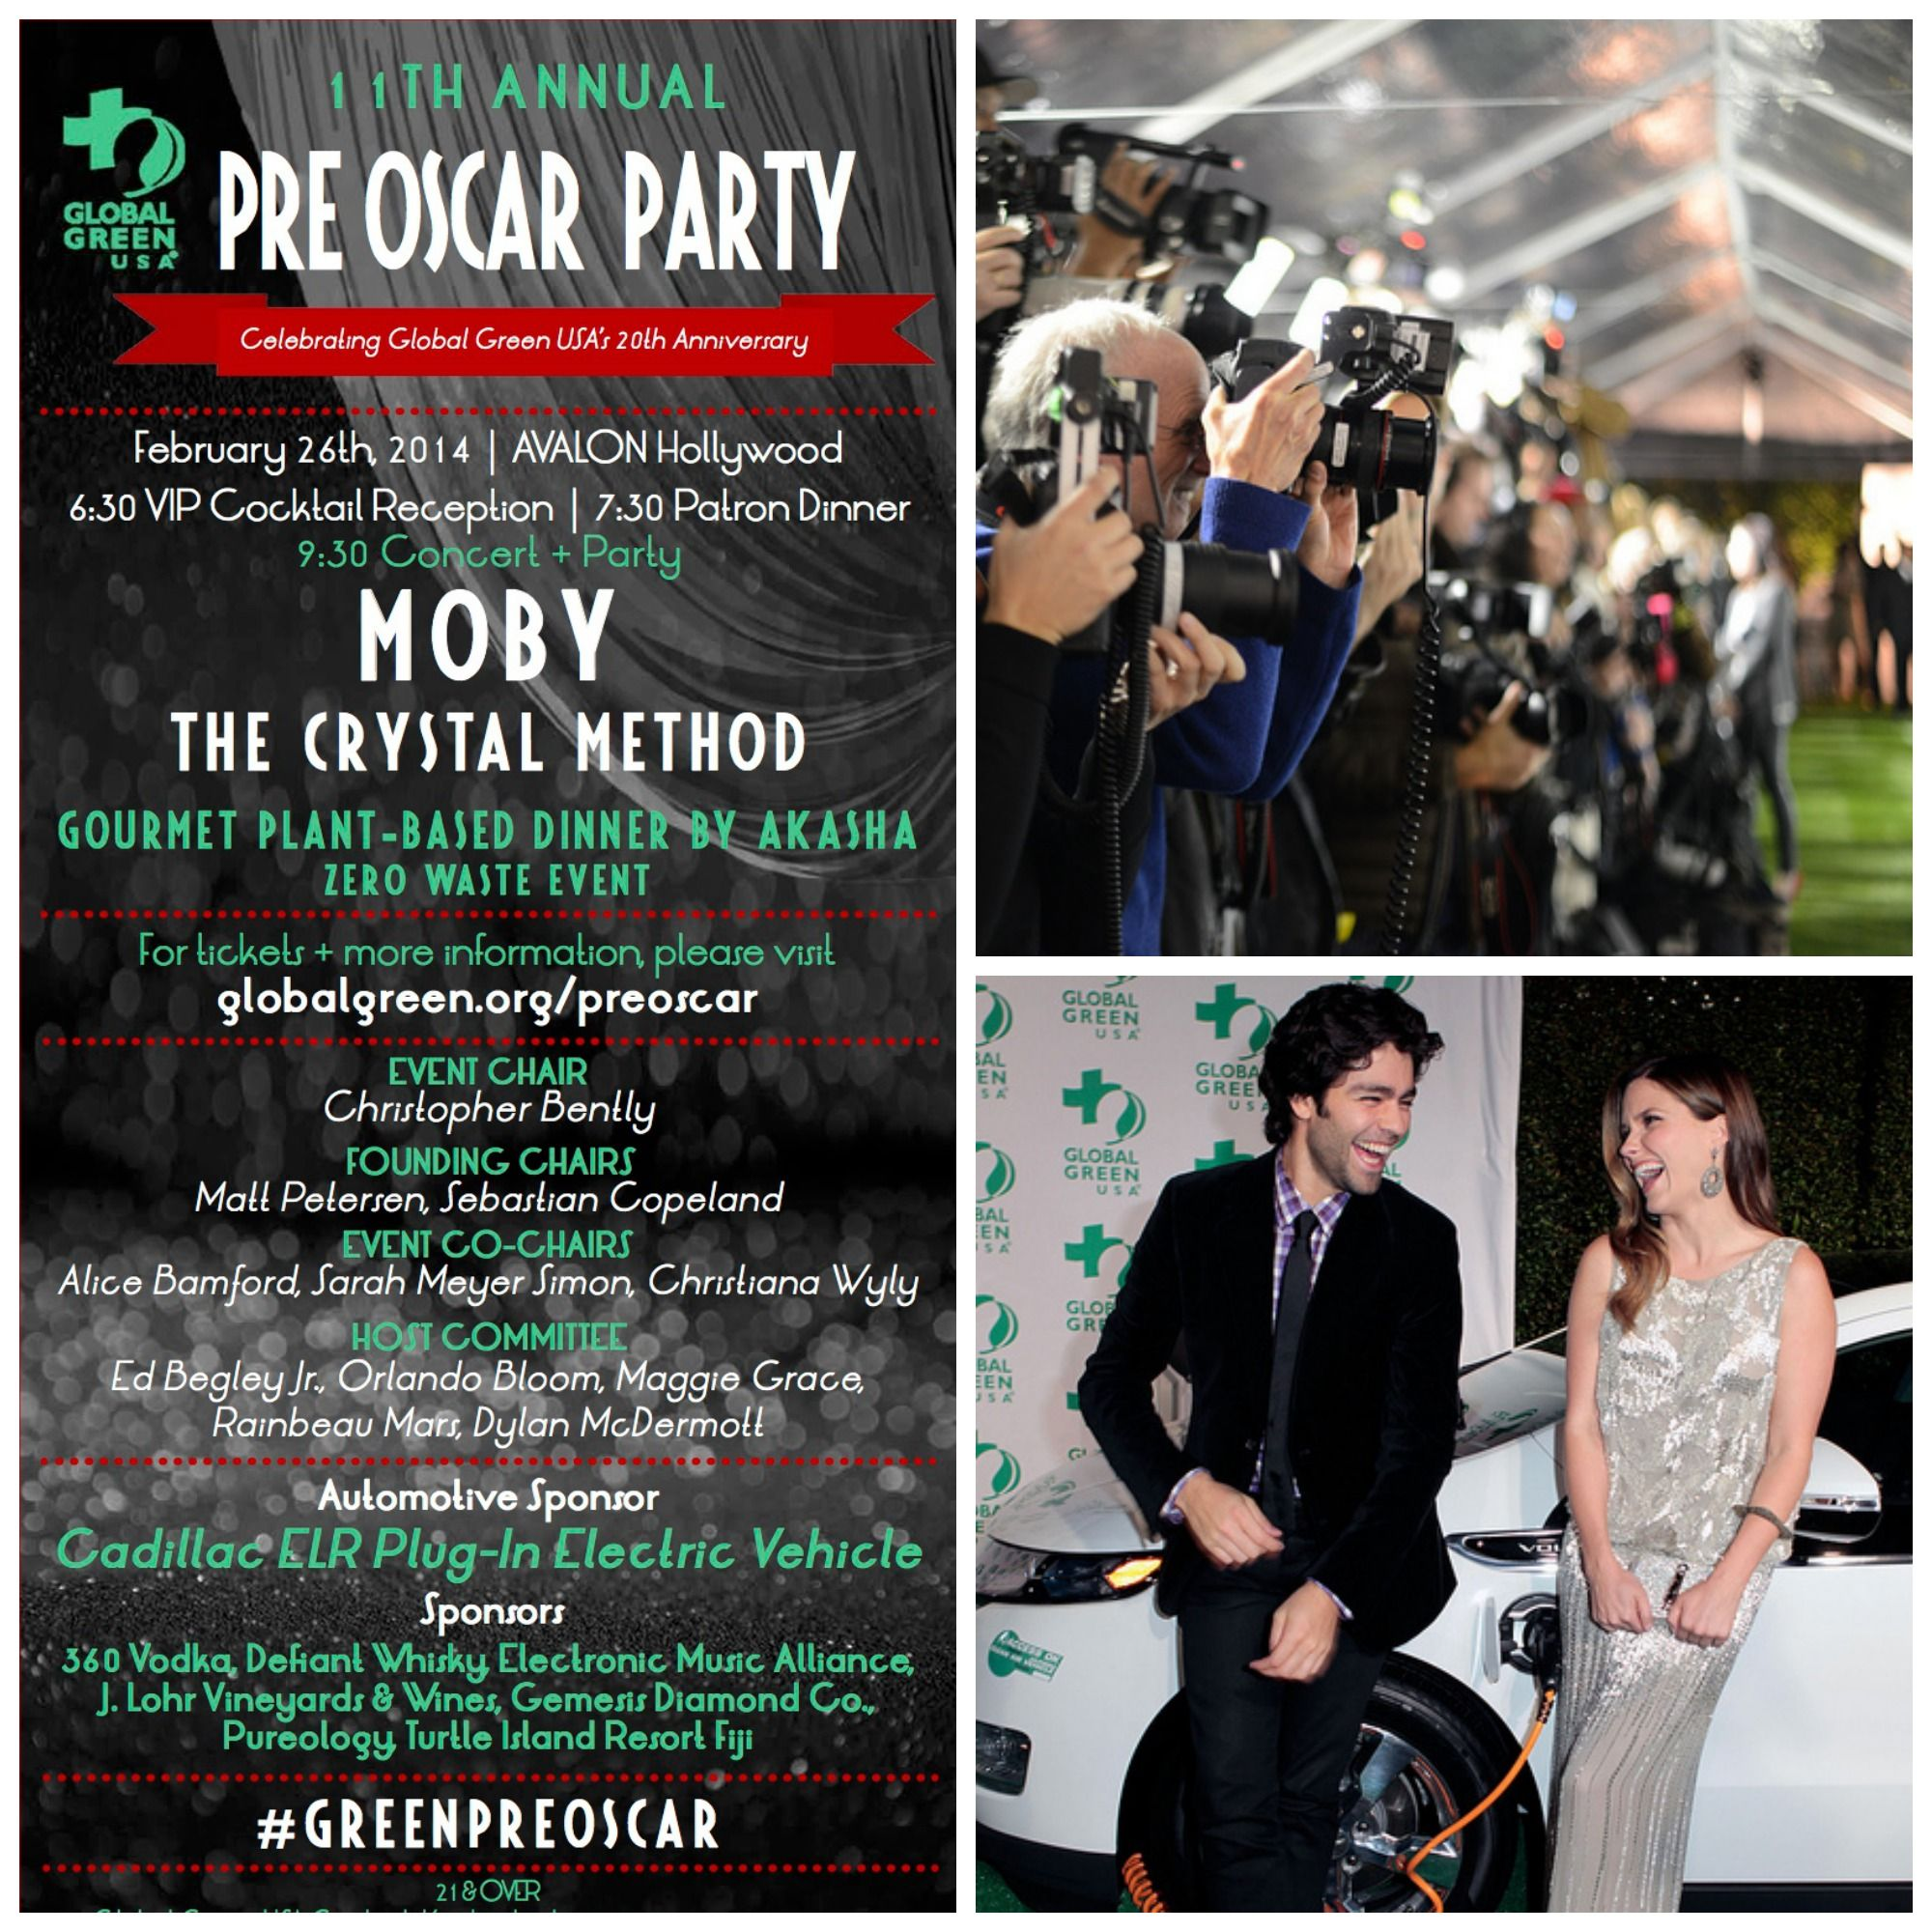 Global Green's 11th annual Pre-Oscar Party is not only about amazing food and fantastic music, it is also about bringing together powerful voices and passionate supporters of smart climate solutions.